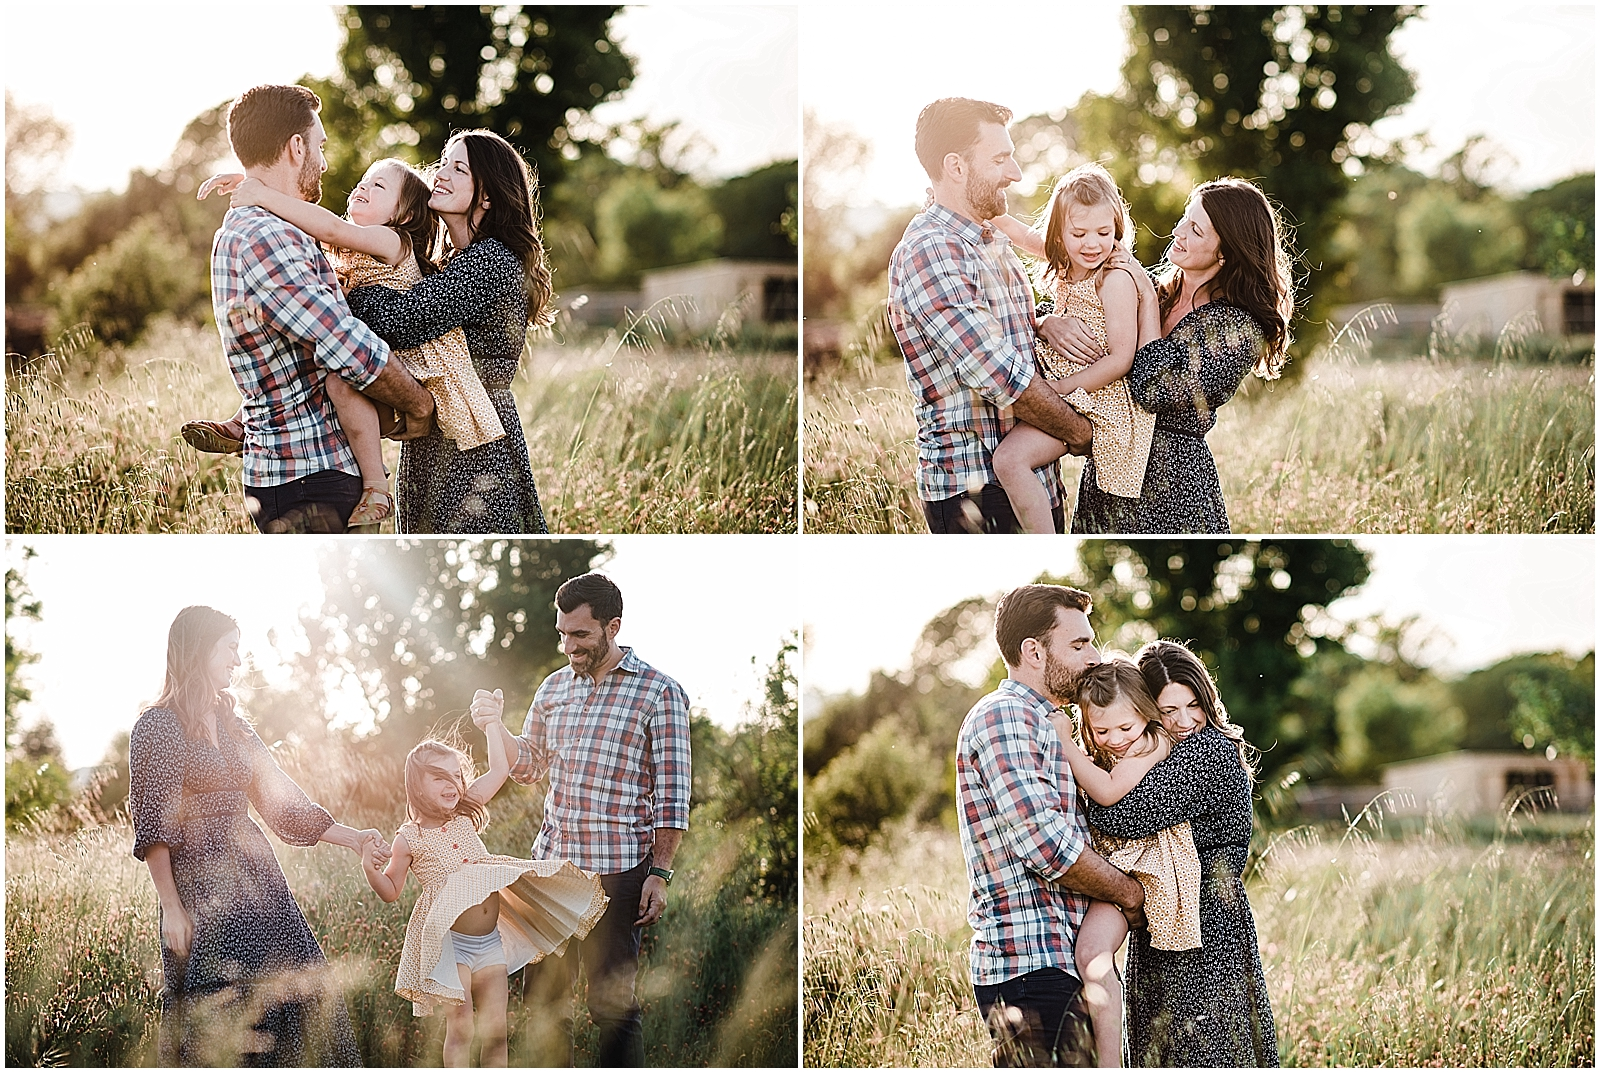 boutique photography retreat ignite your craft with blair thurston retreats | family lifestyle amanda joy photography